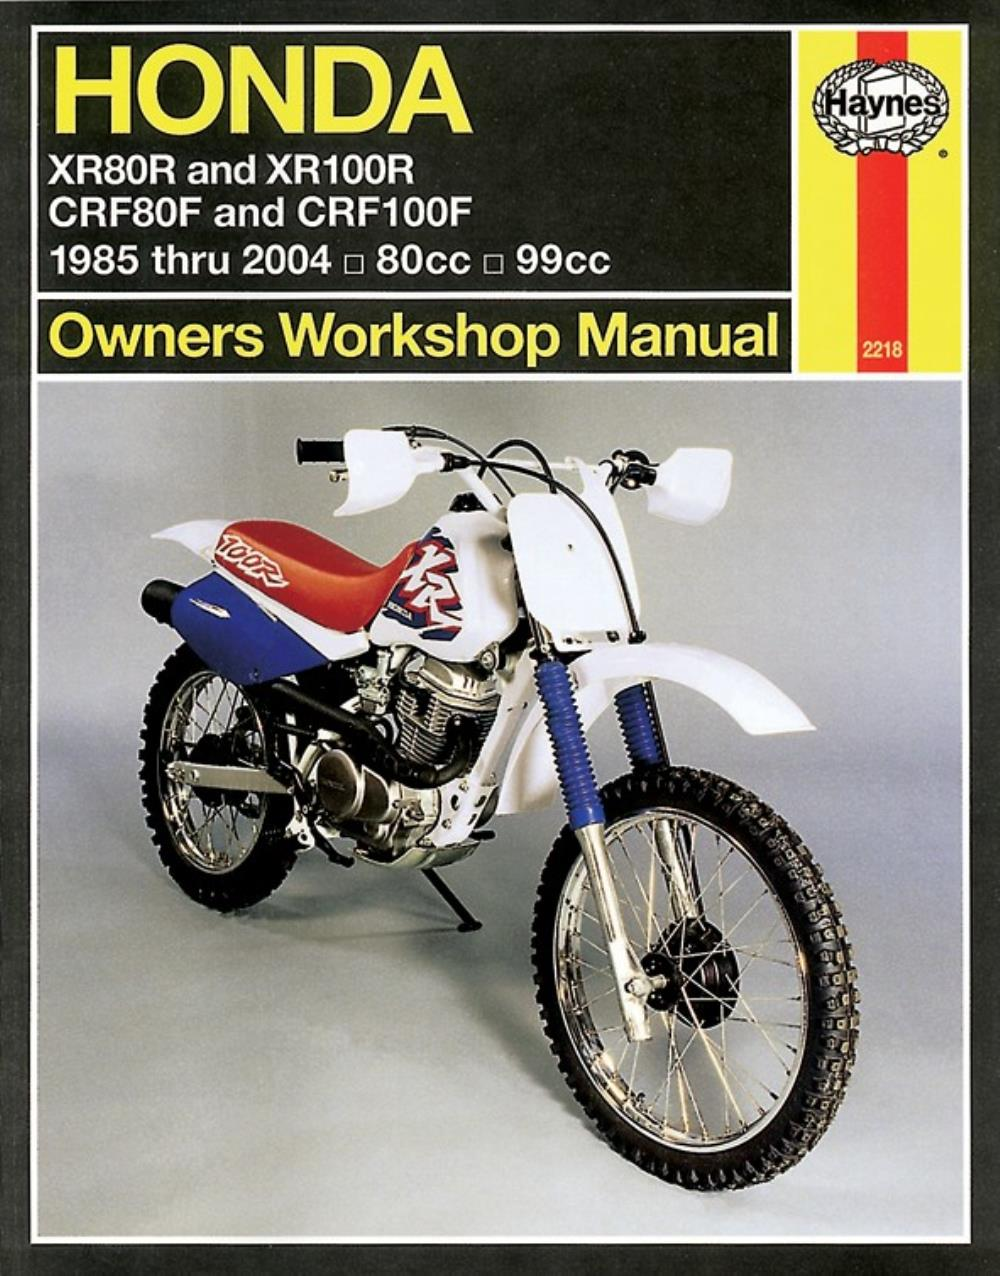 Manual Haynes for 2002 Honda XR 100 R2